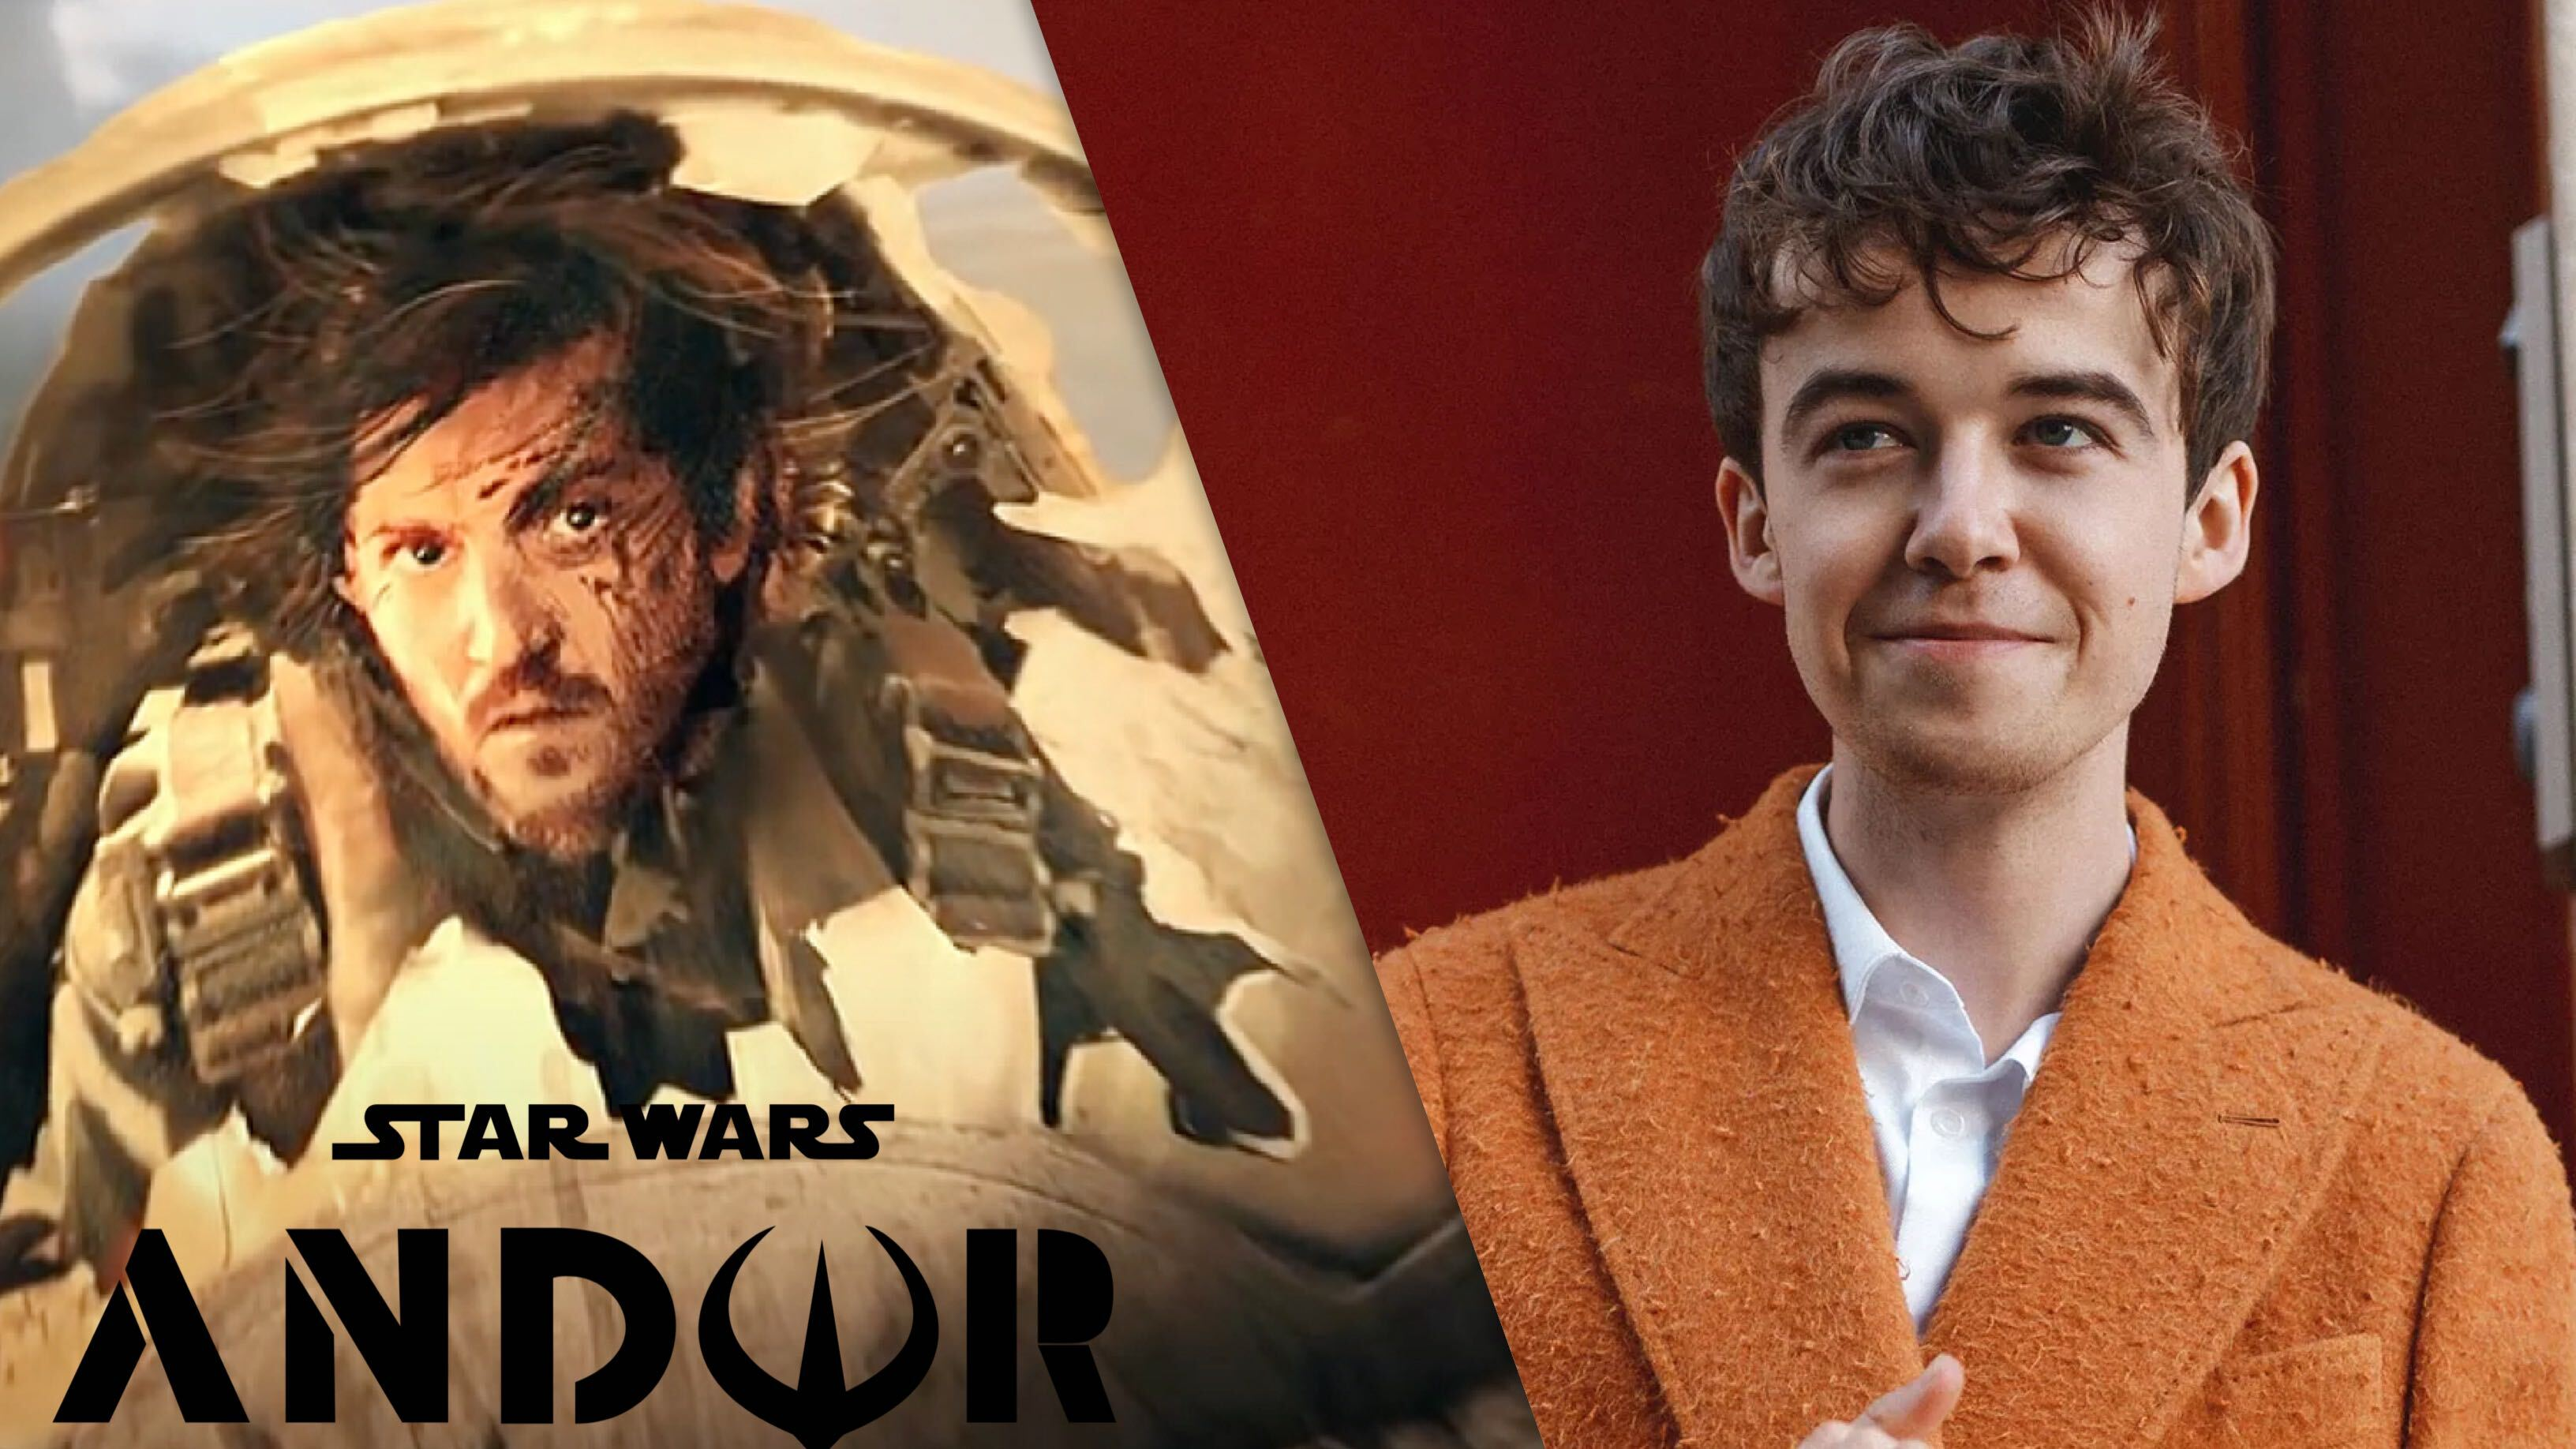 Andor, Alex Lawther